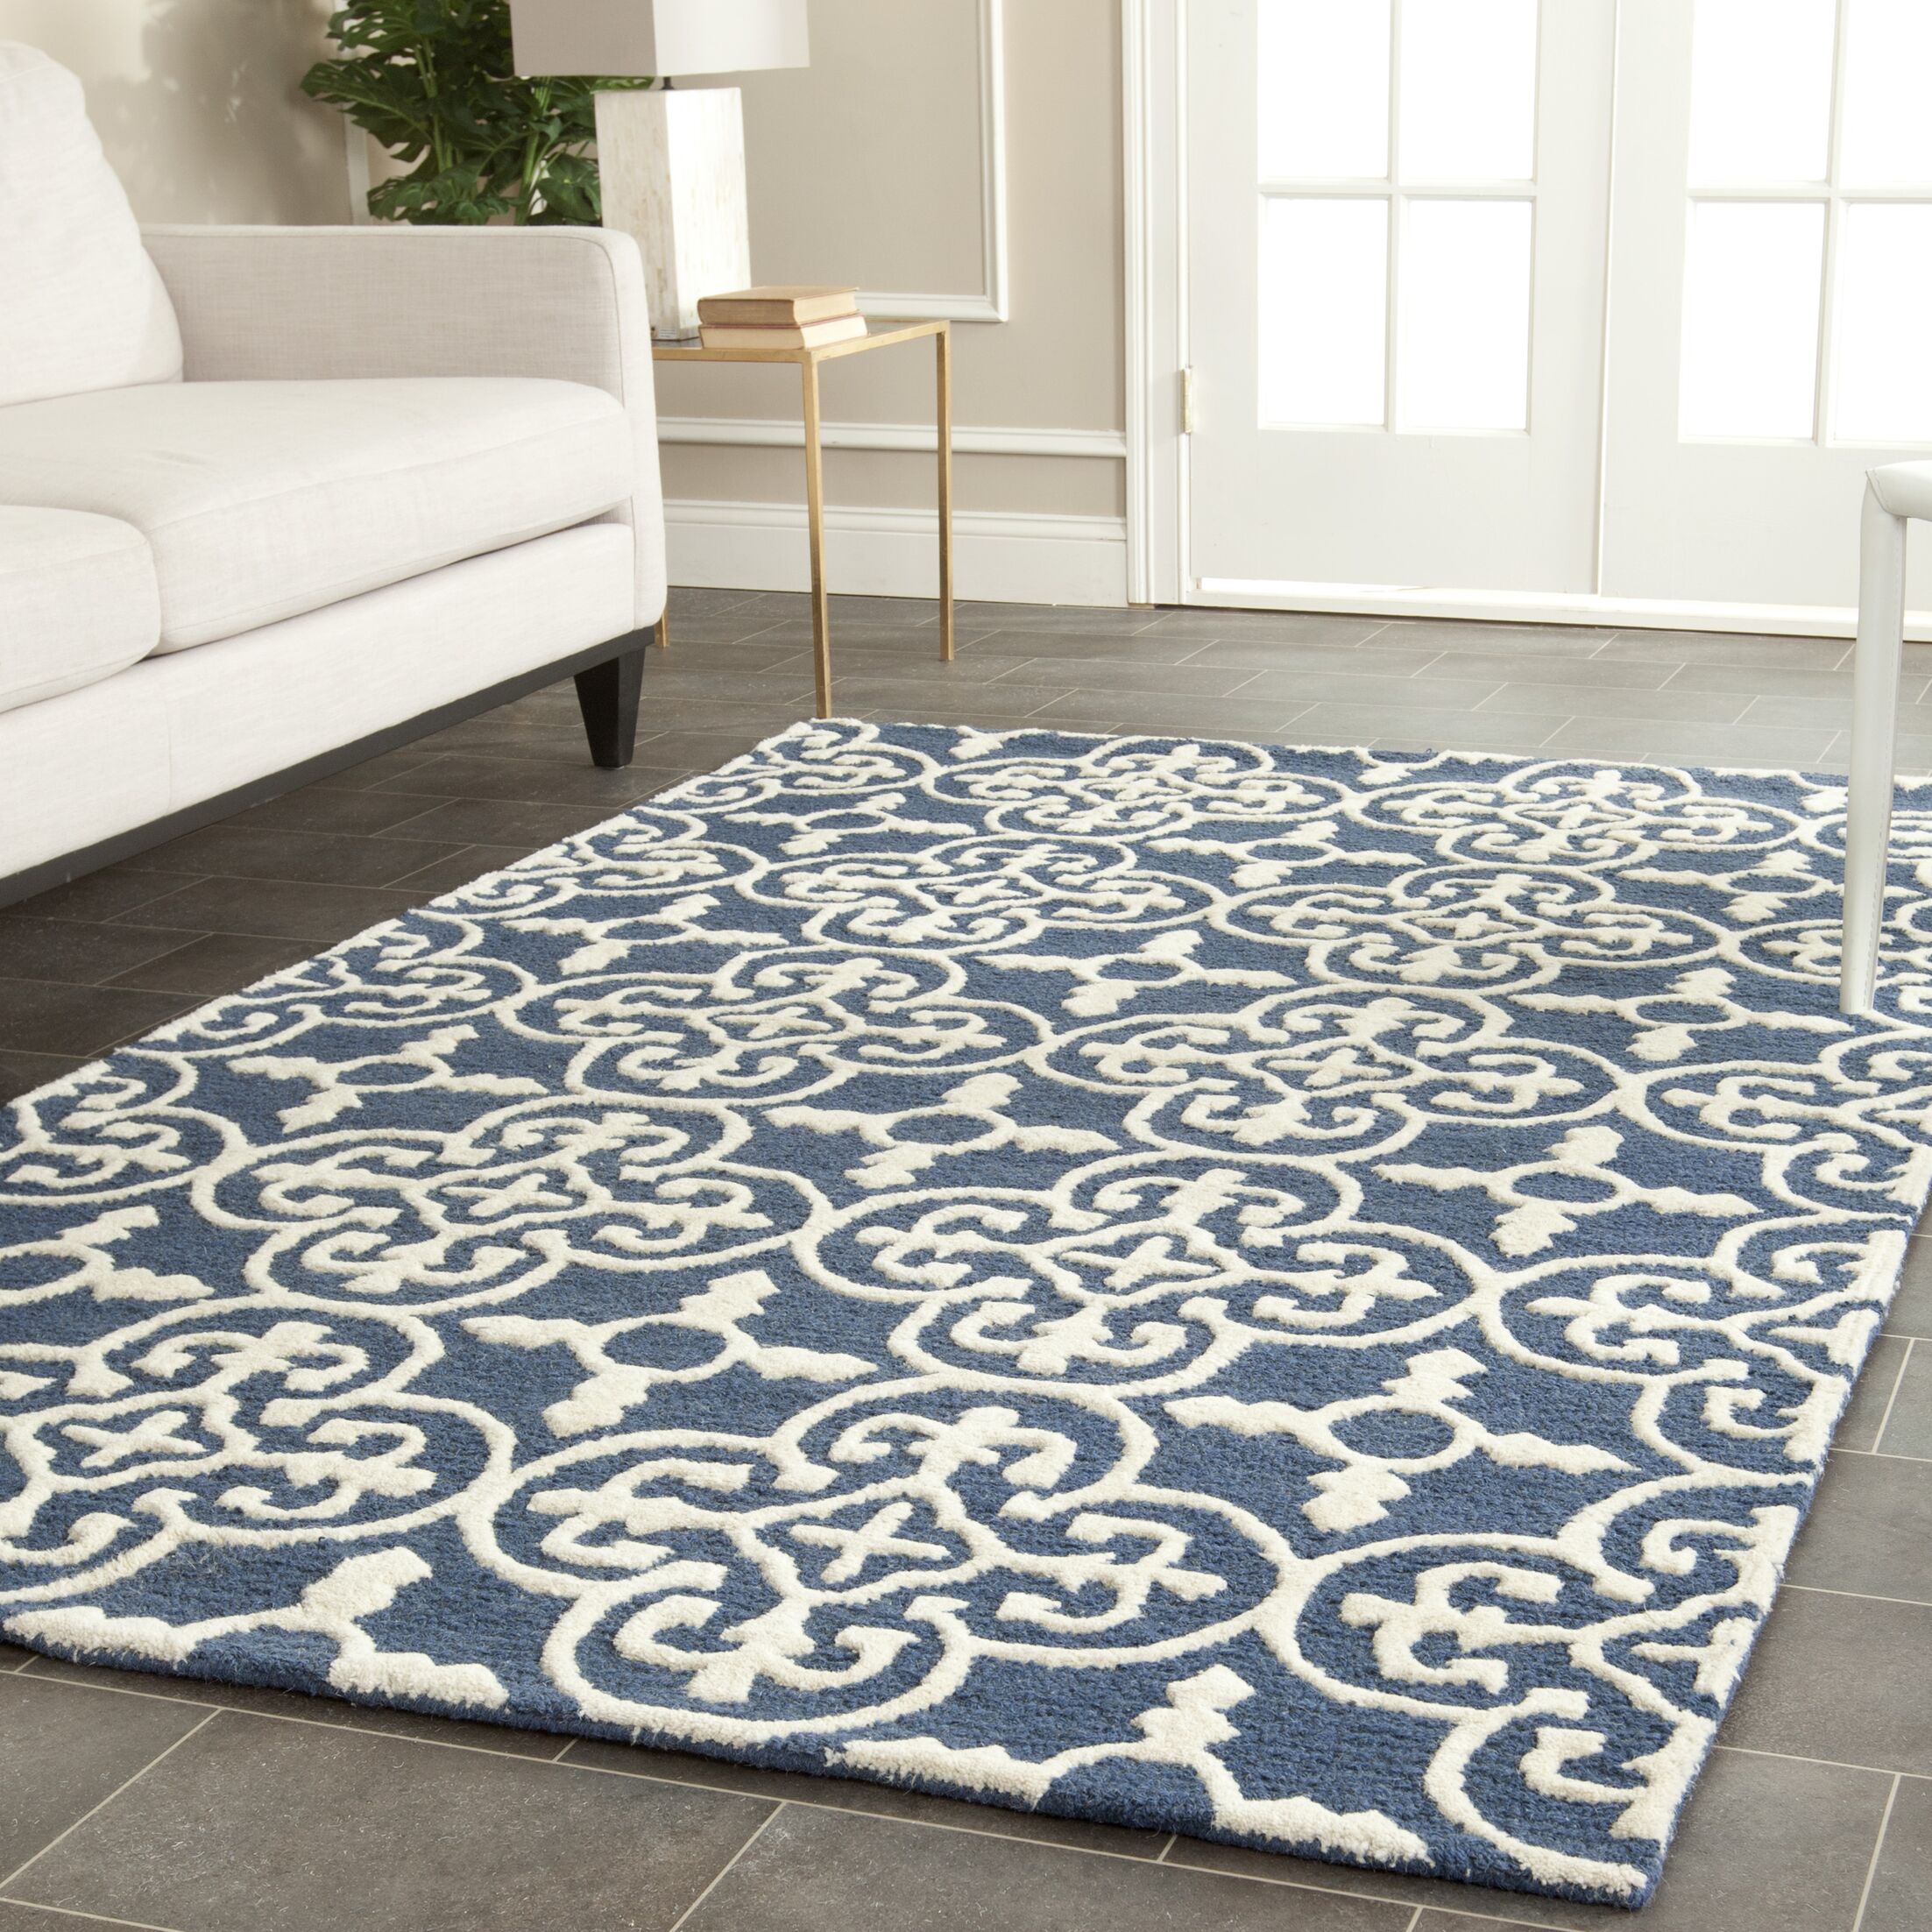 Byron Navy Blue /Ivory Tufted Wool Area Rug Rug Size: Rectangle 6' x 9'